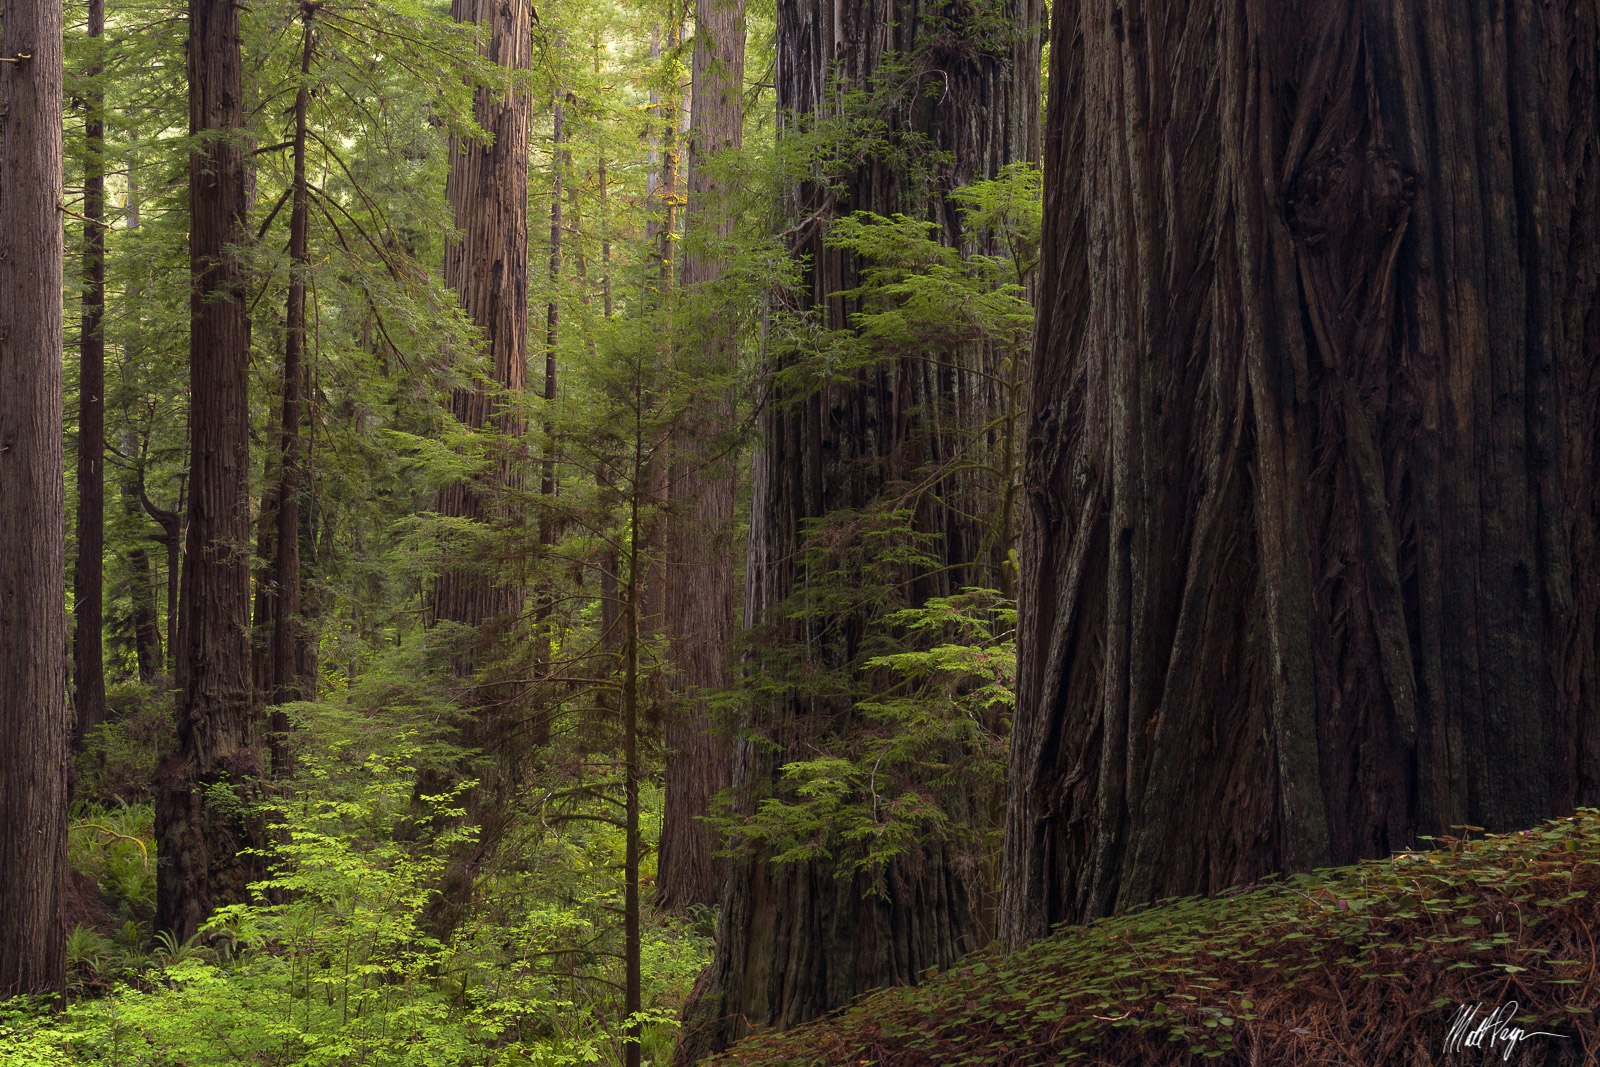 Deep exploration within the Redwoods of California is a challenging endeavor. The forest undergrown is filled with pitfalls and...